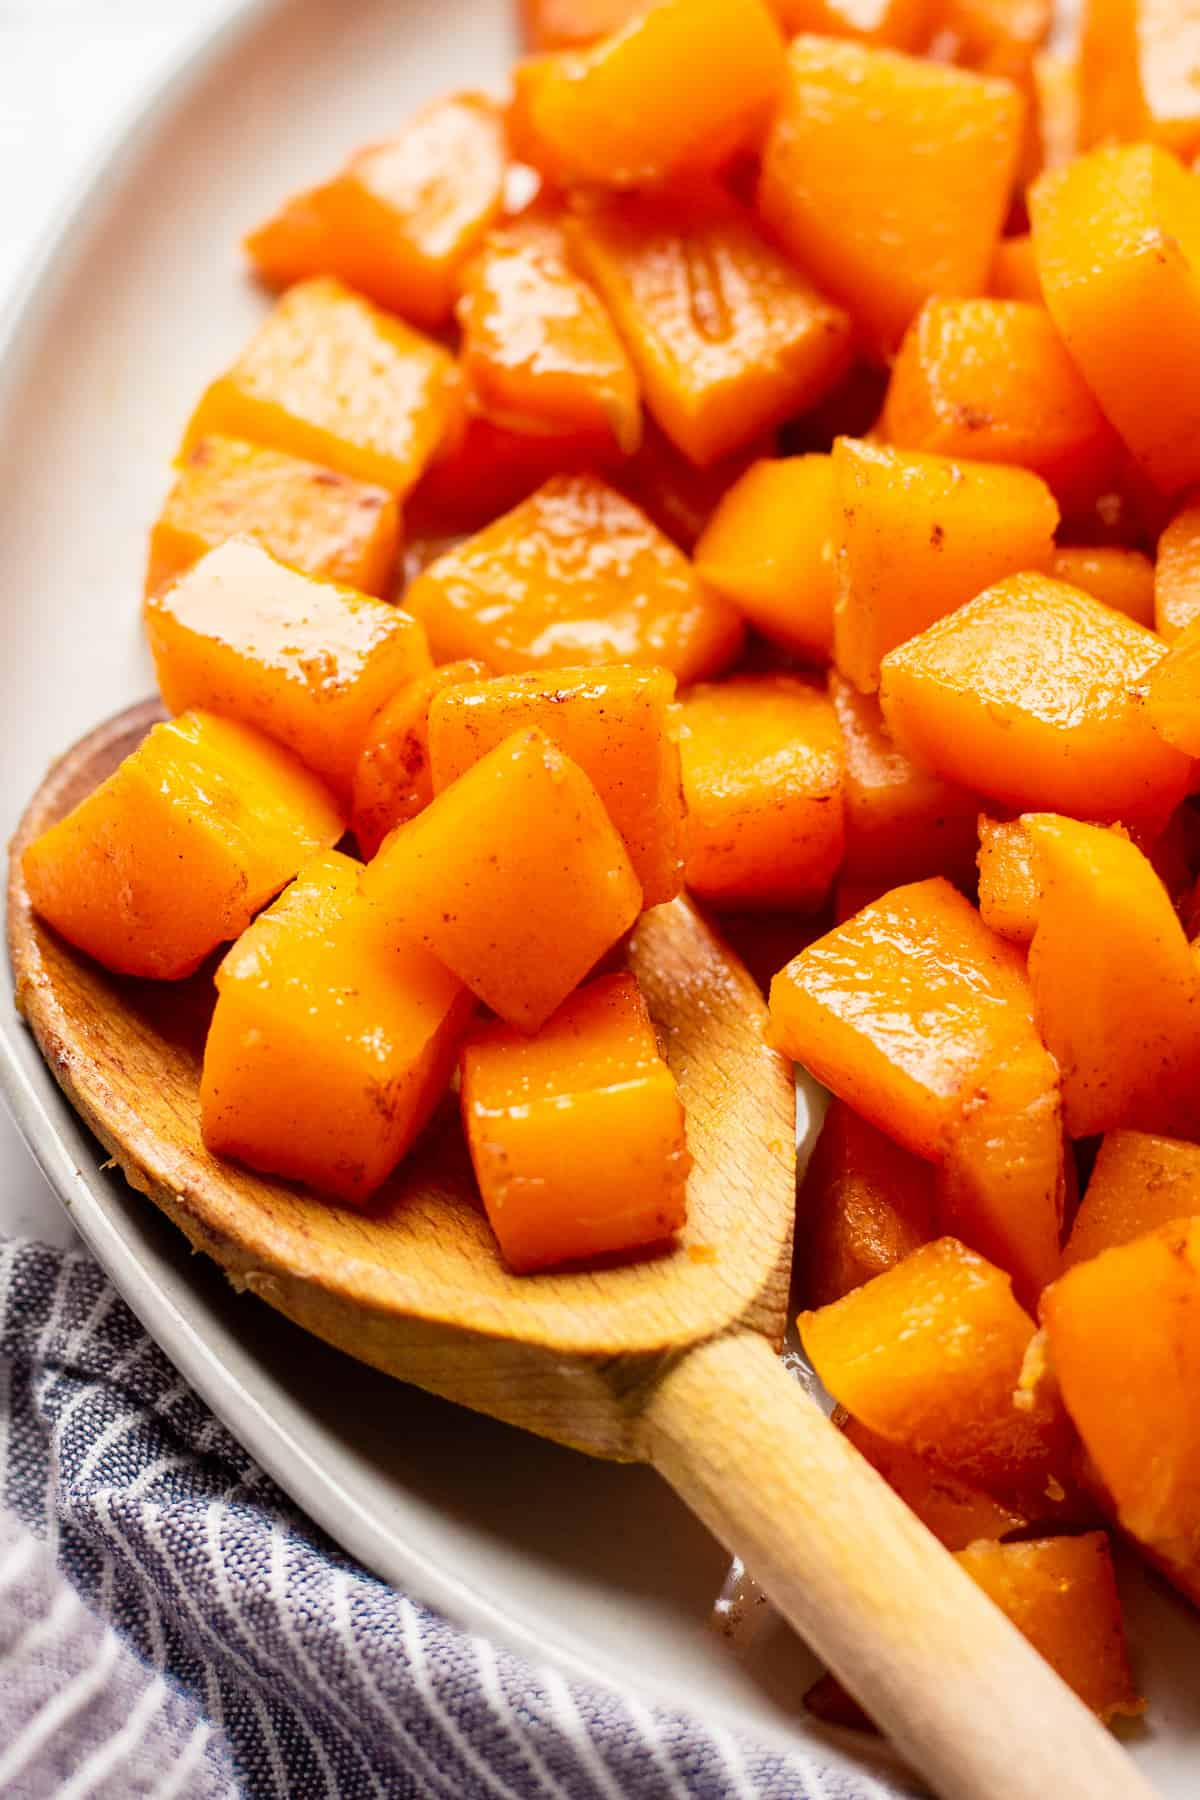 A wooden spoon full of roasted and candied butternut squash